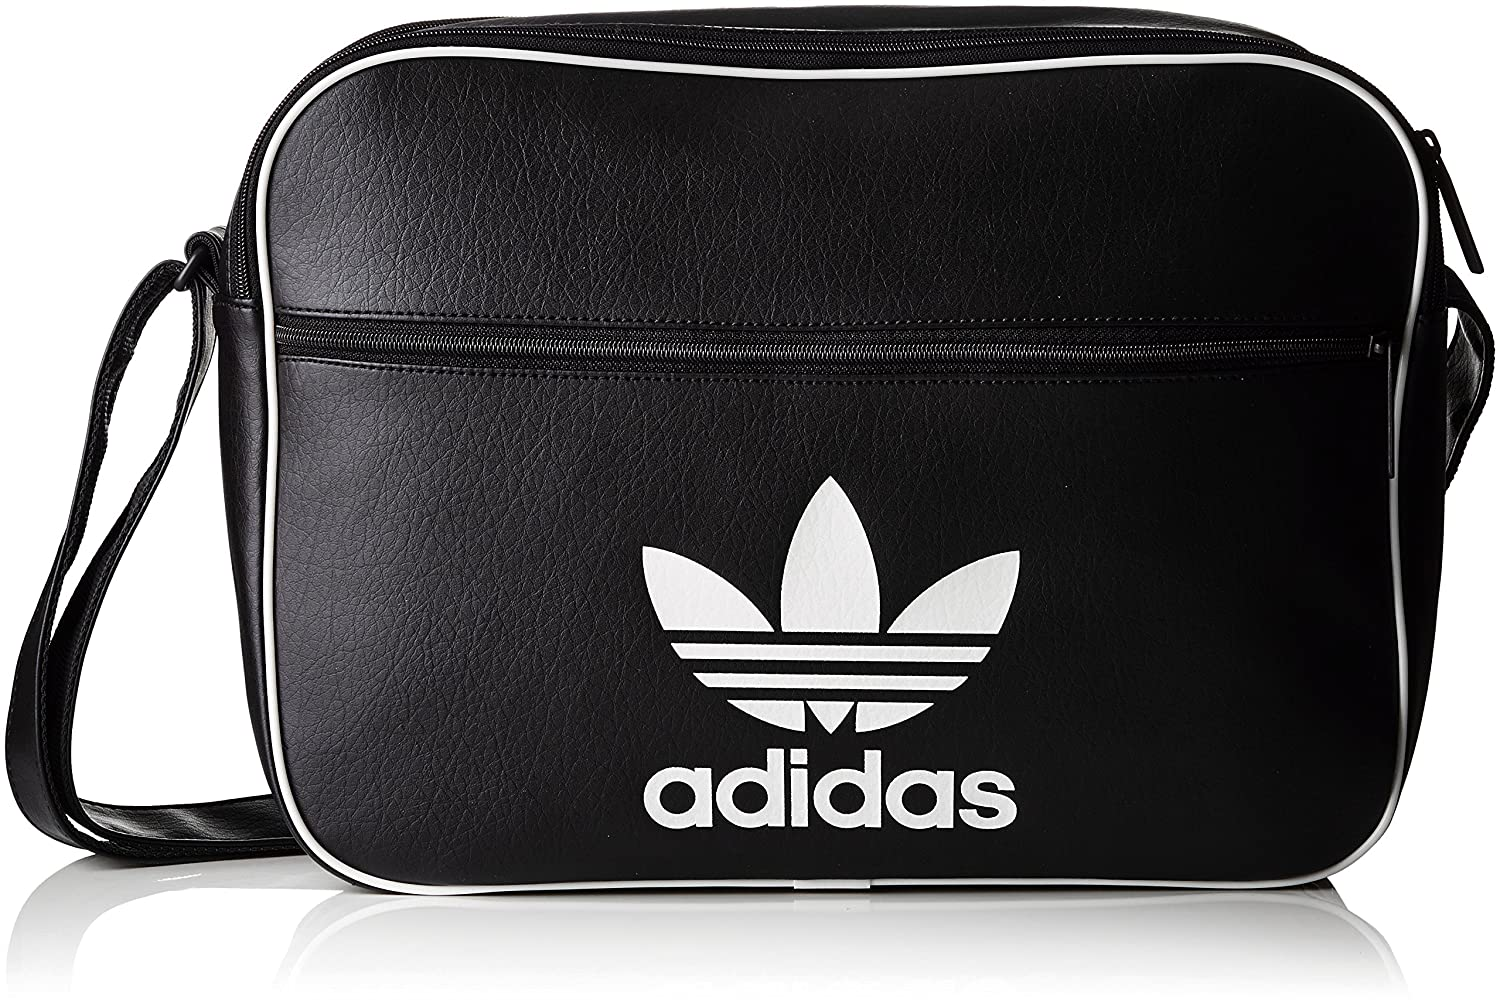 68b836f0cb adidas Airliner AC CL Adult's Outdoor Belt available in Black/Negro - 25  Litres: Amazon.co.uk: Sports & Outdoors